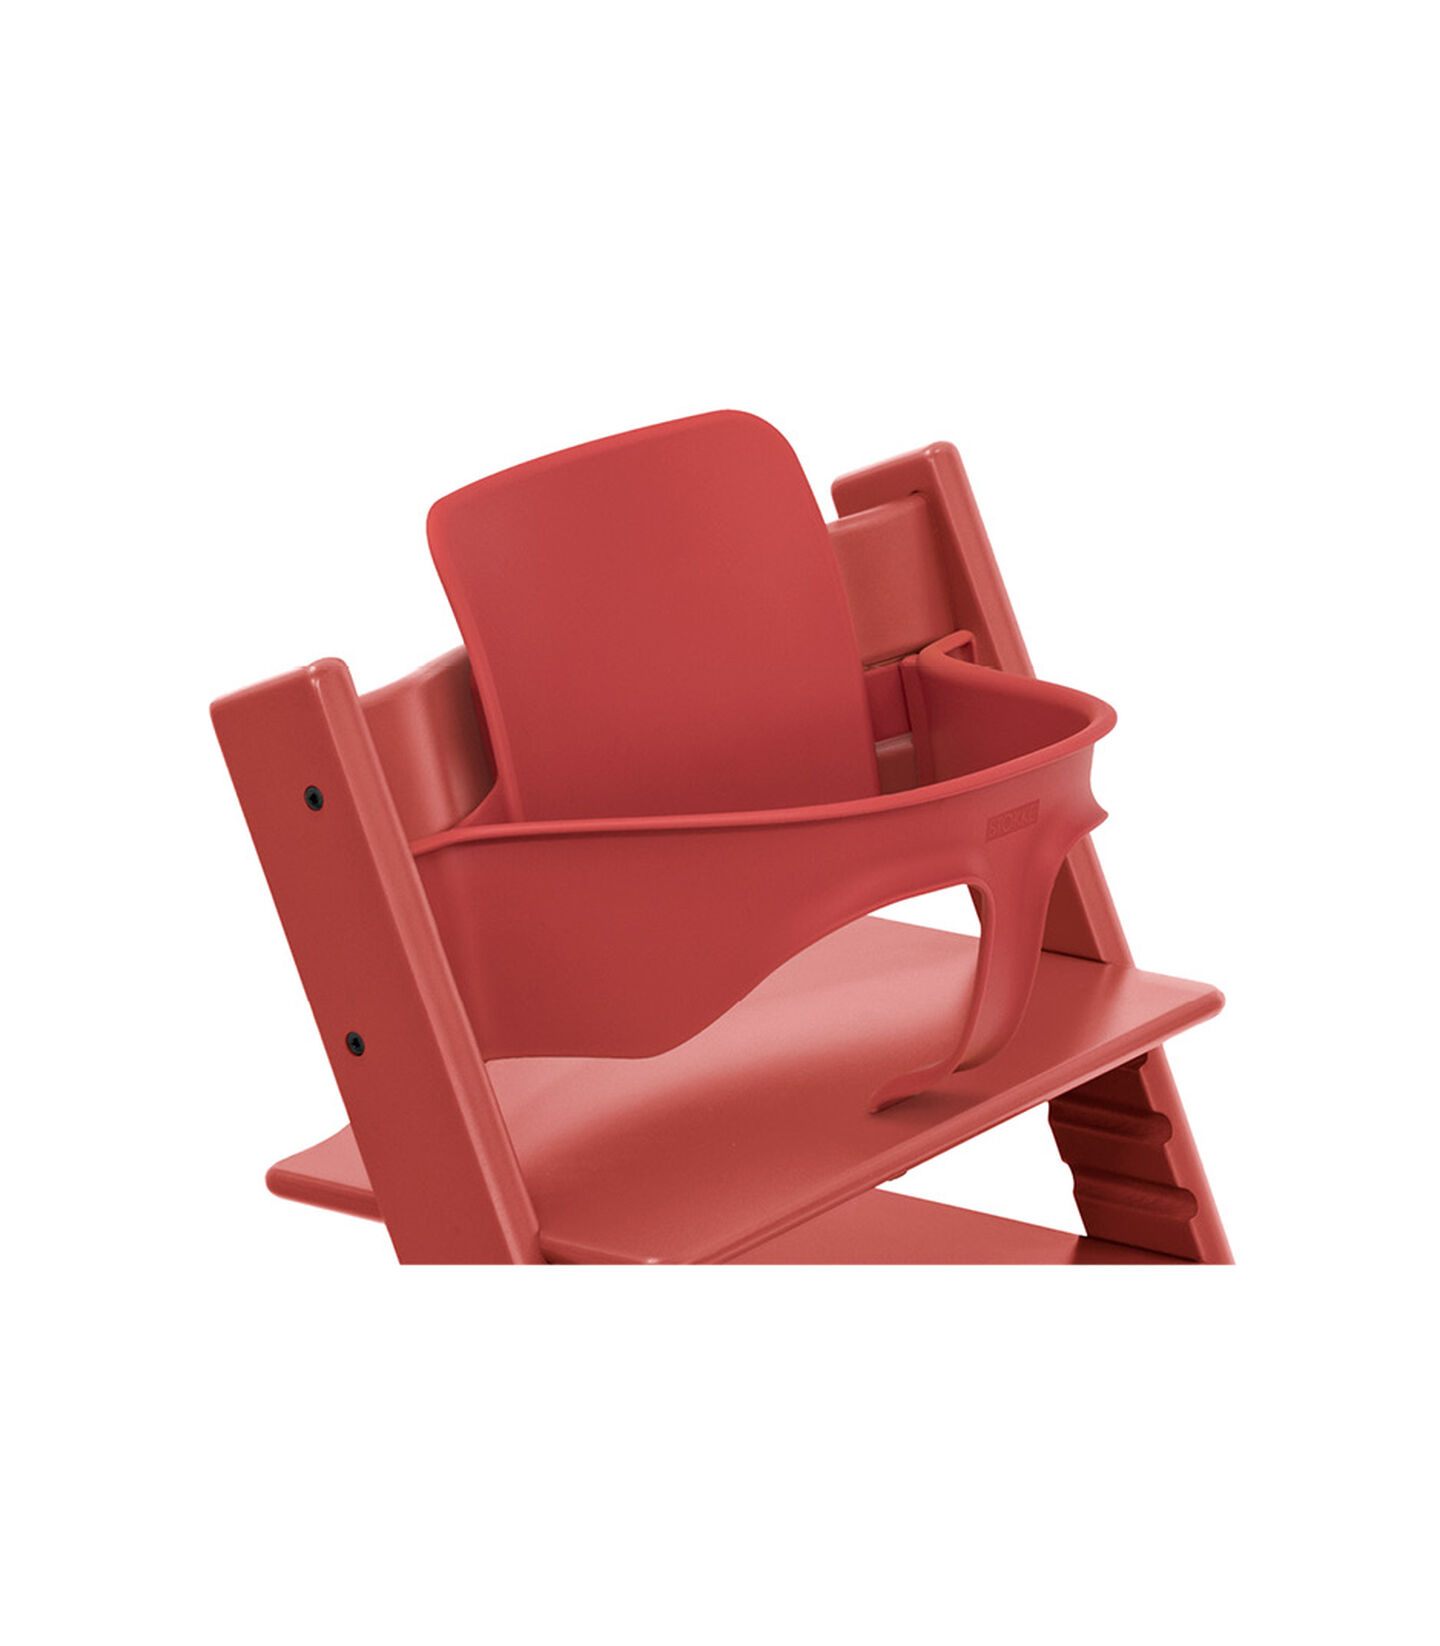 Tripp Trapp® Baby Set Warm Red, Warm Red, mainview view 2